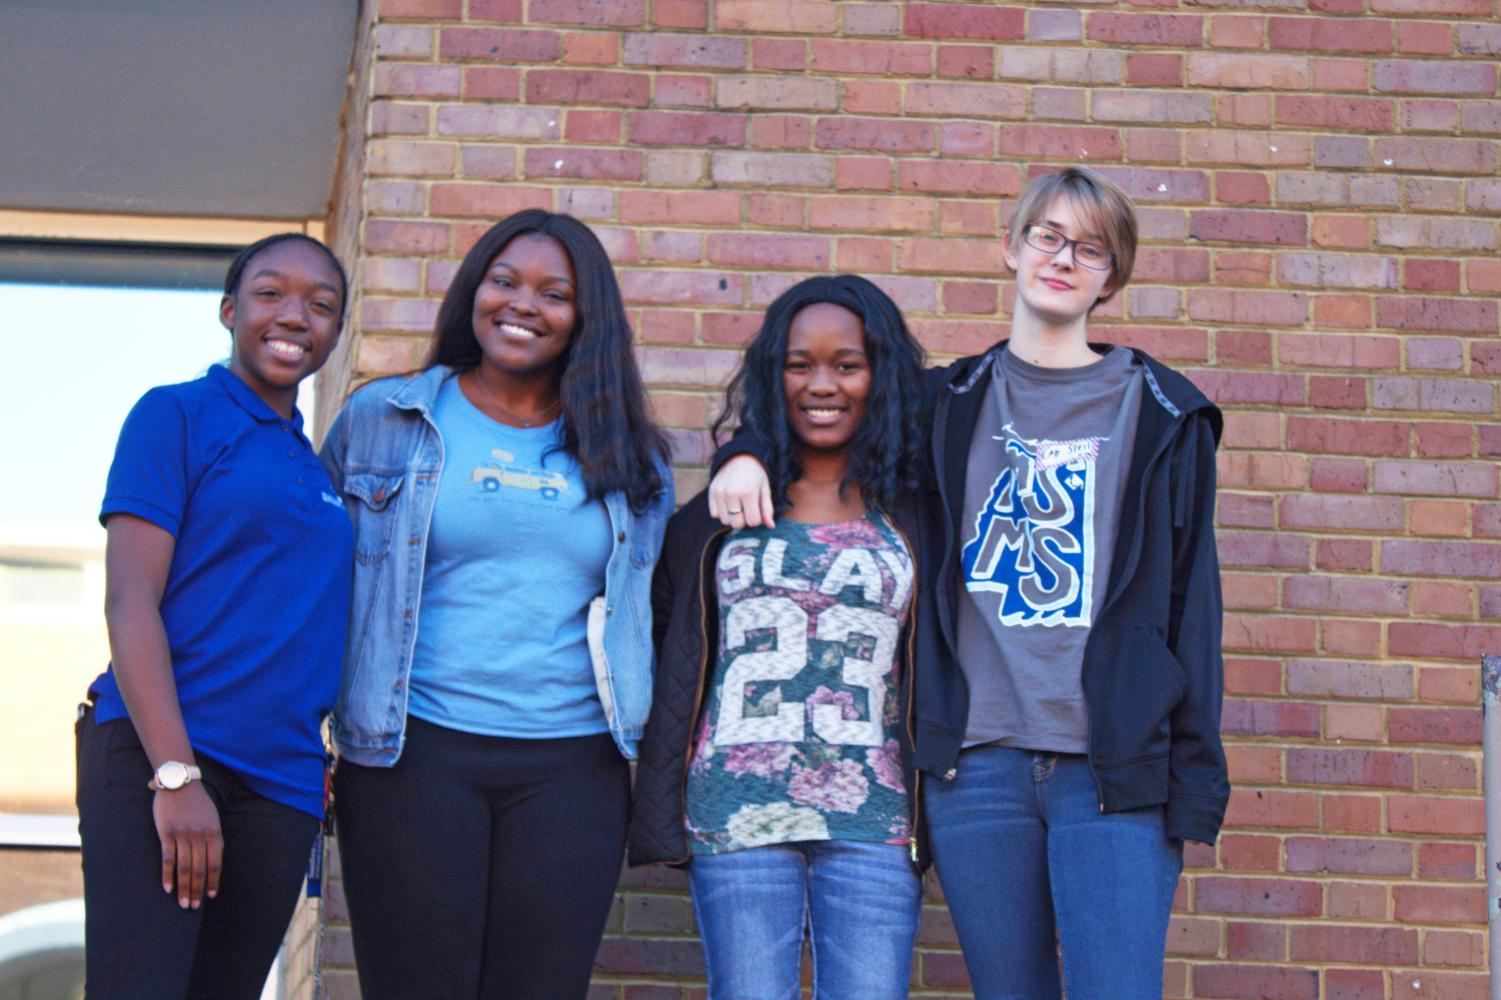 (From left to right) Niyah Troup, Tiwaniya Tyler, Essence Hughes and Steil